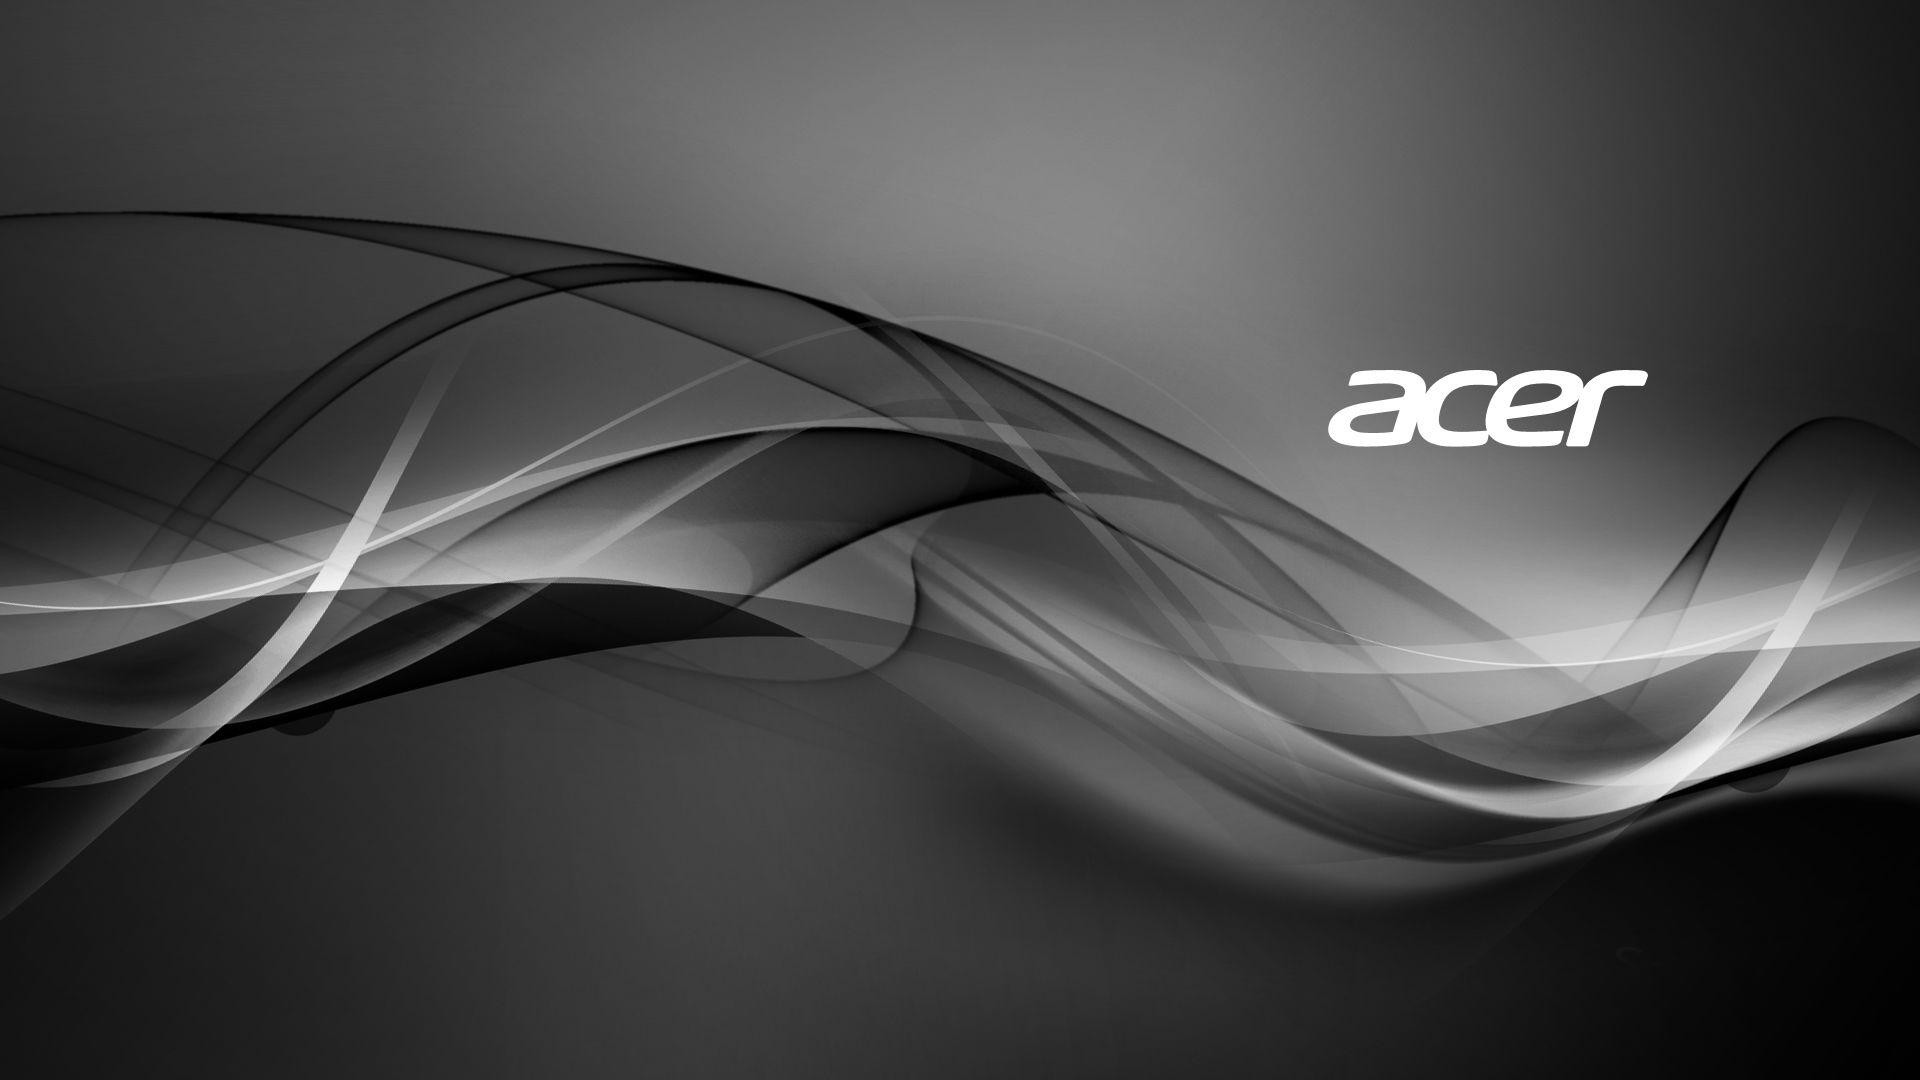 1920x1080 Acer Wallpapers | PC Doctor Ardee